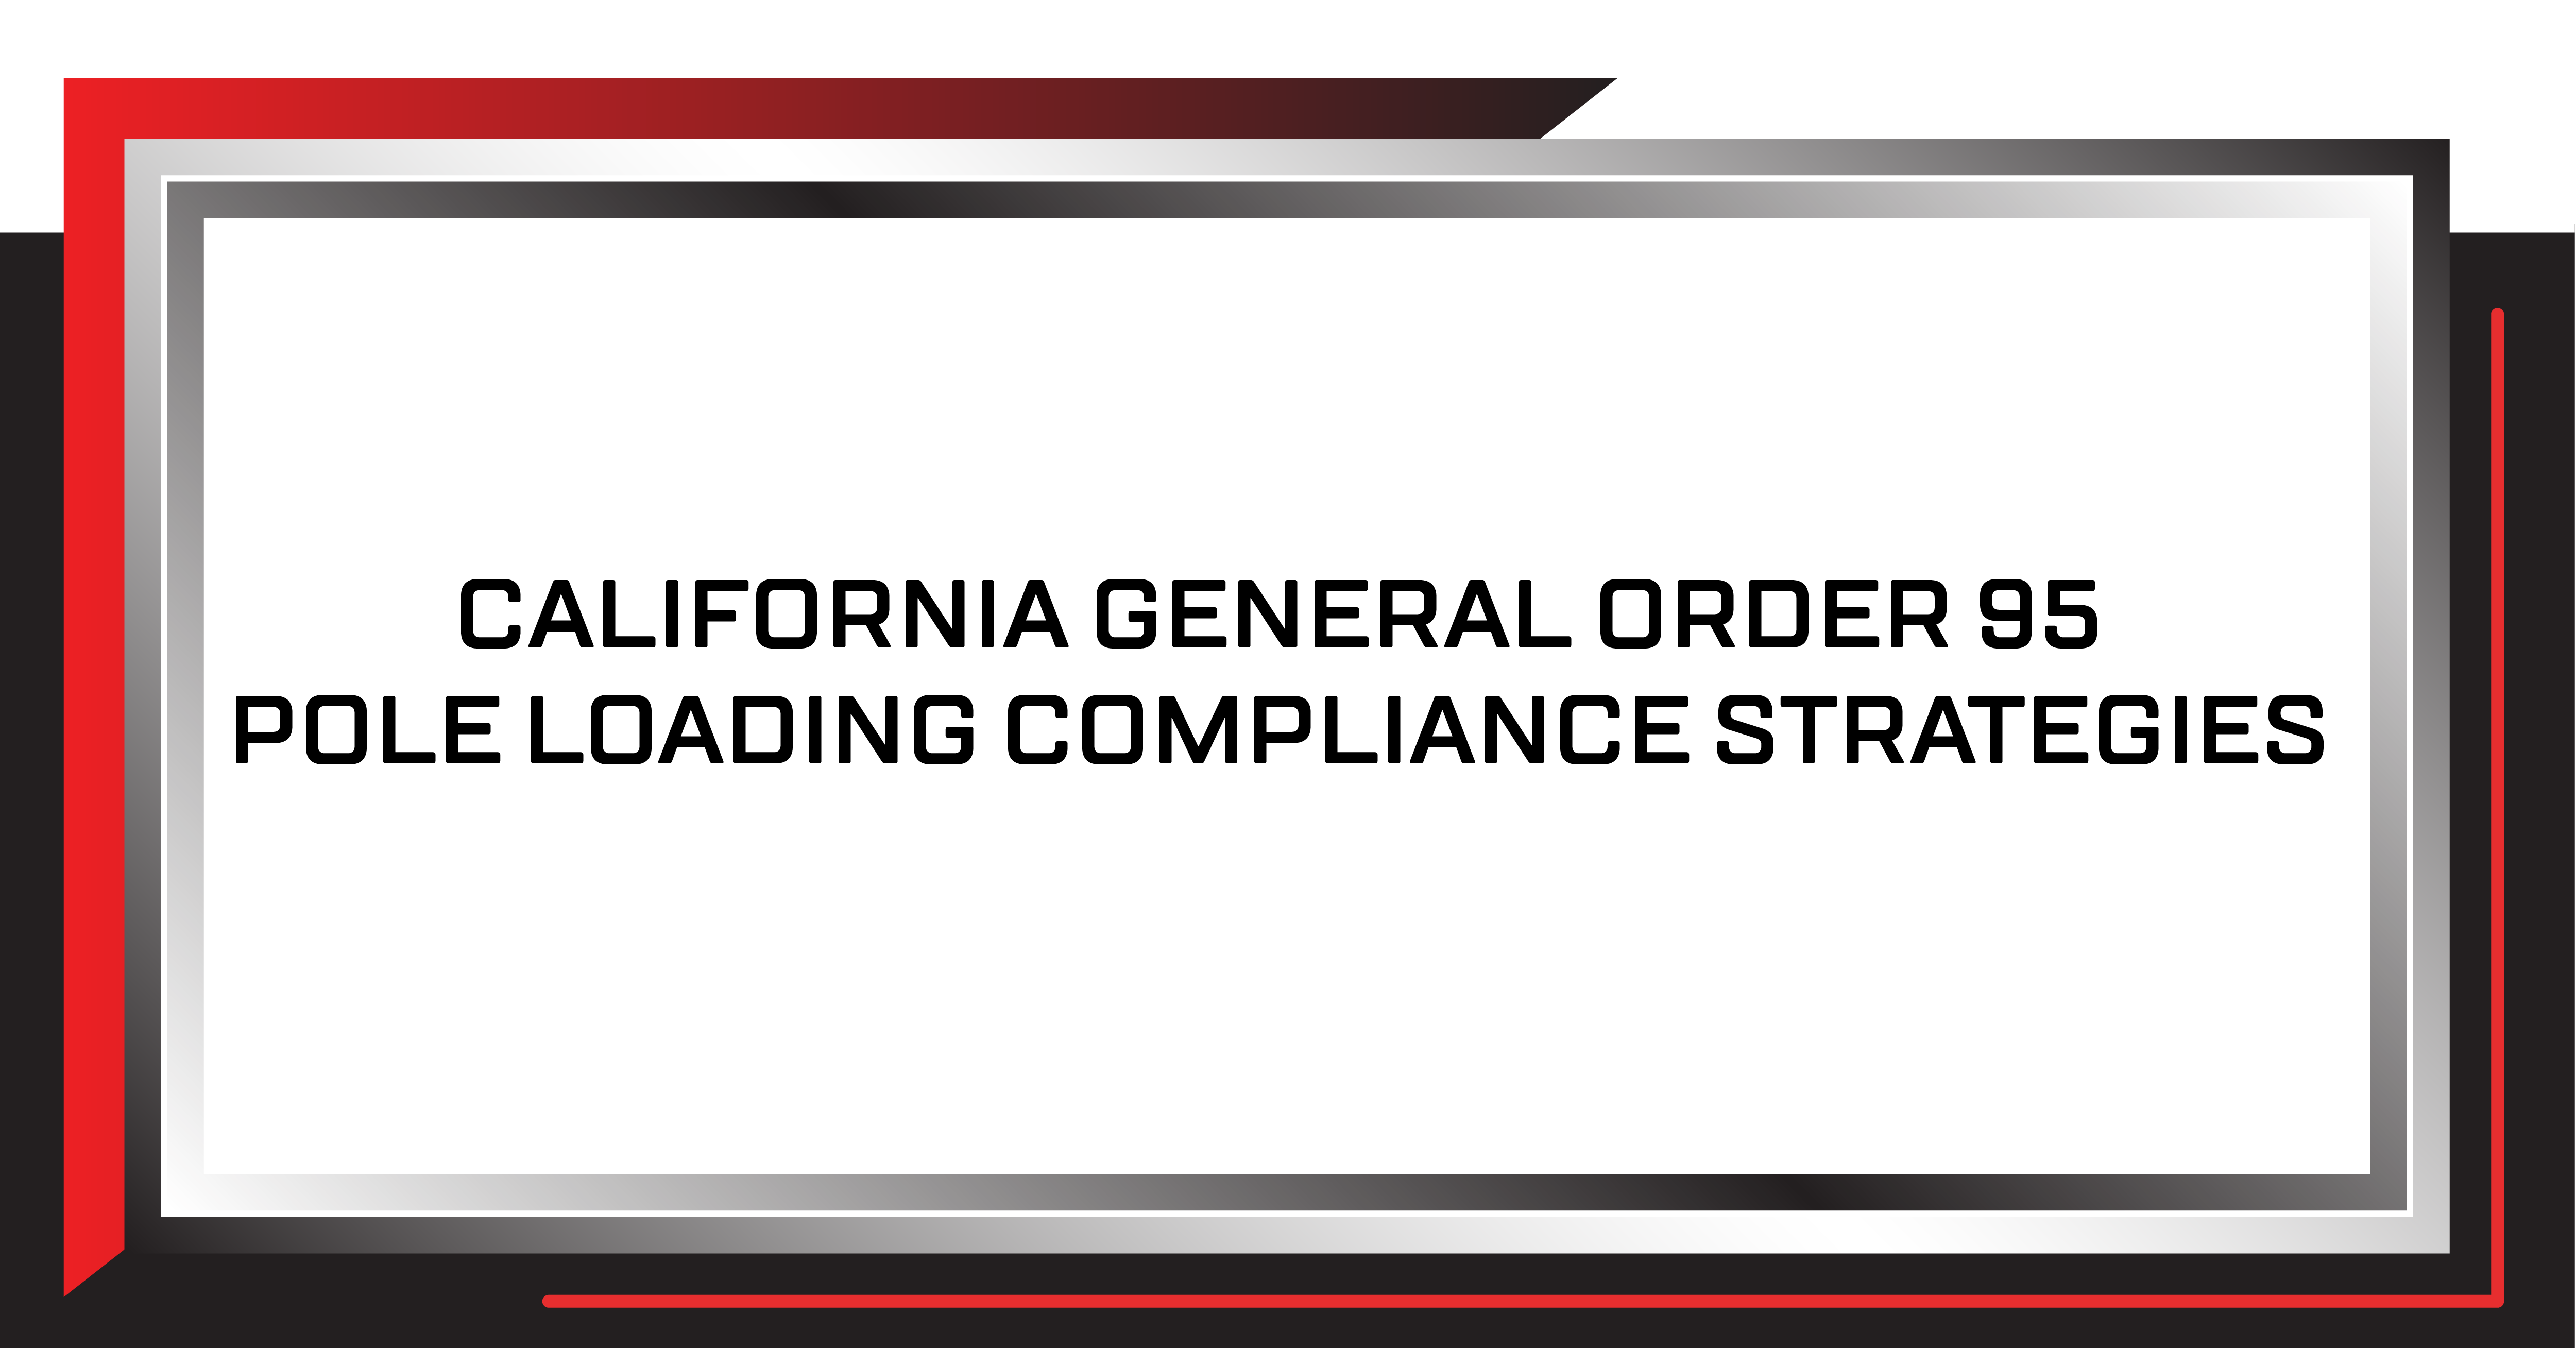 California GO 95 Pole Loading Compliance Strategies